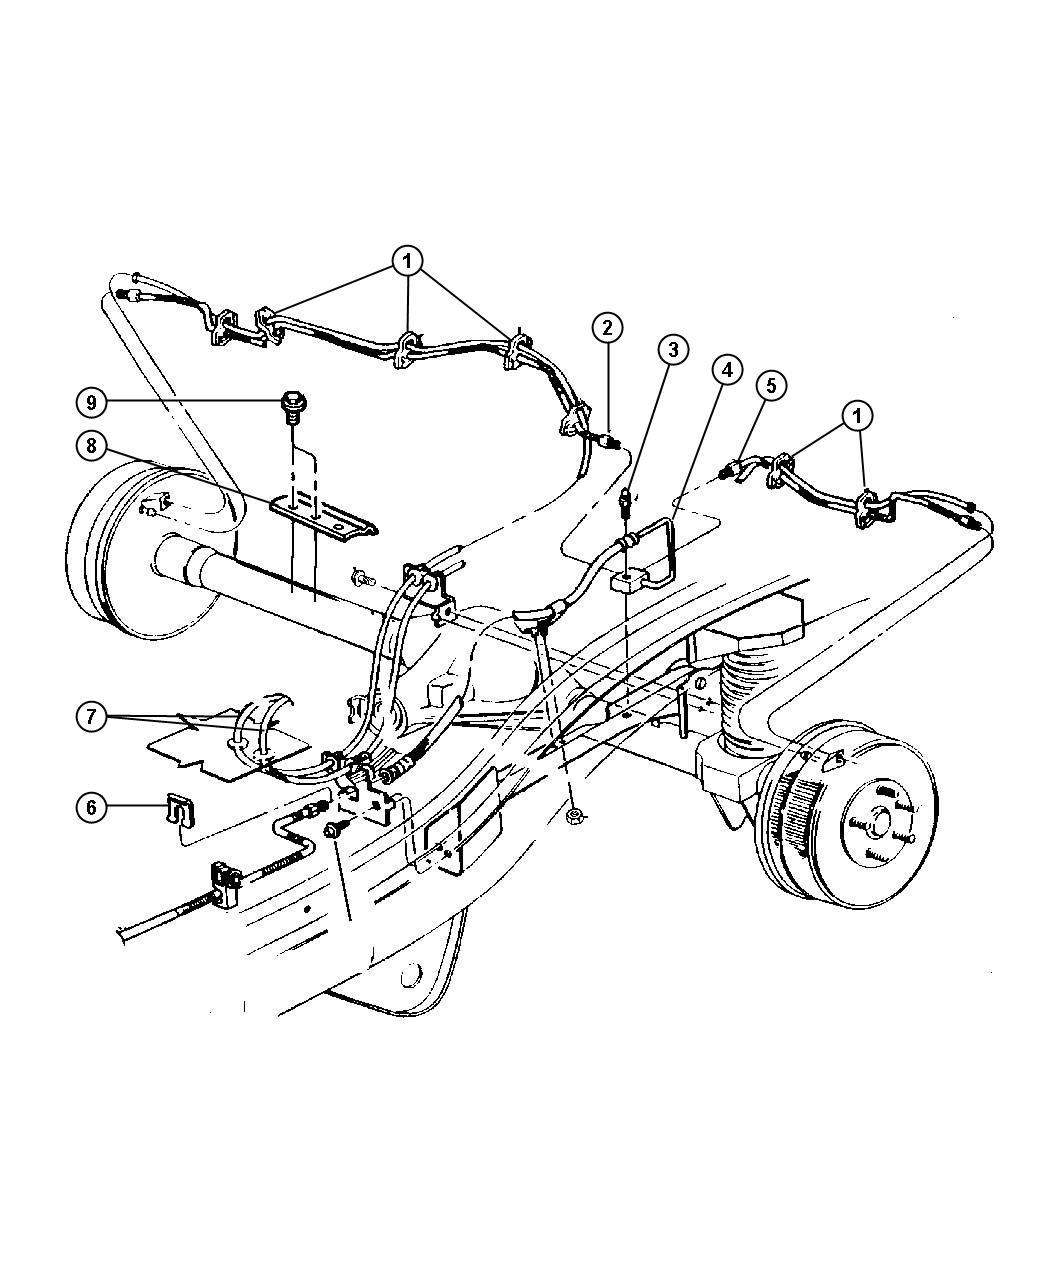 1995 dodge ram 1500 fuel pump wiring diagram 1995 discover your wiring diagram for a 2001 dodge ram